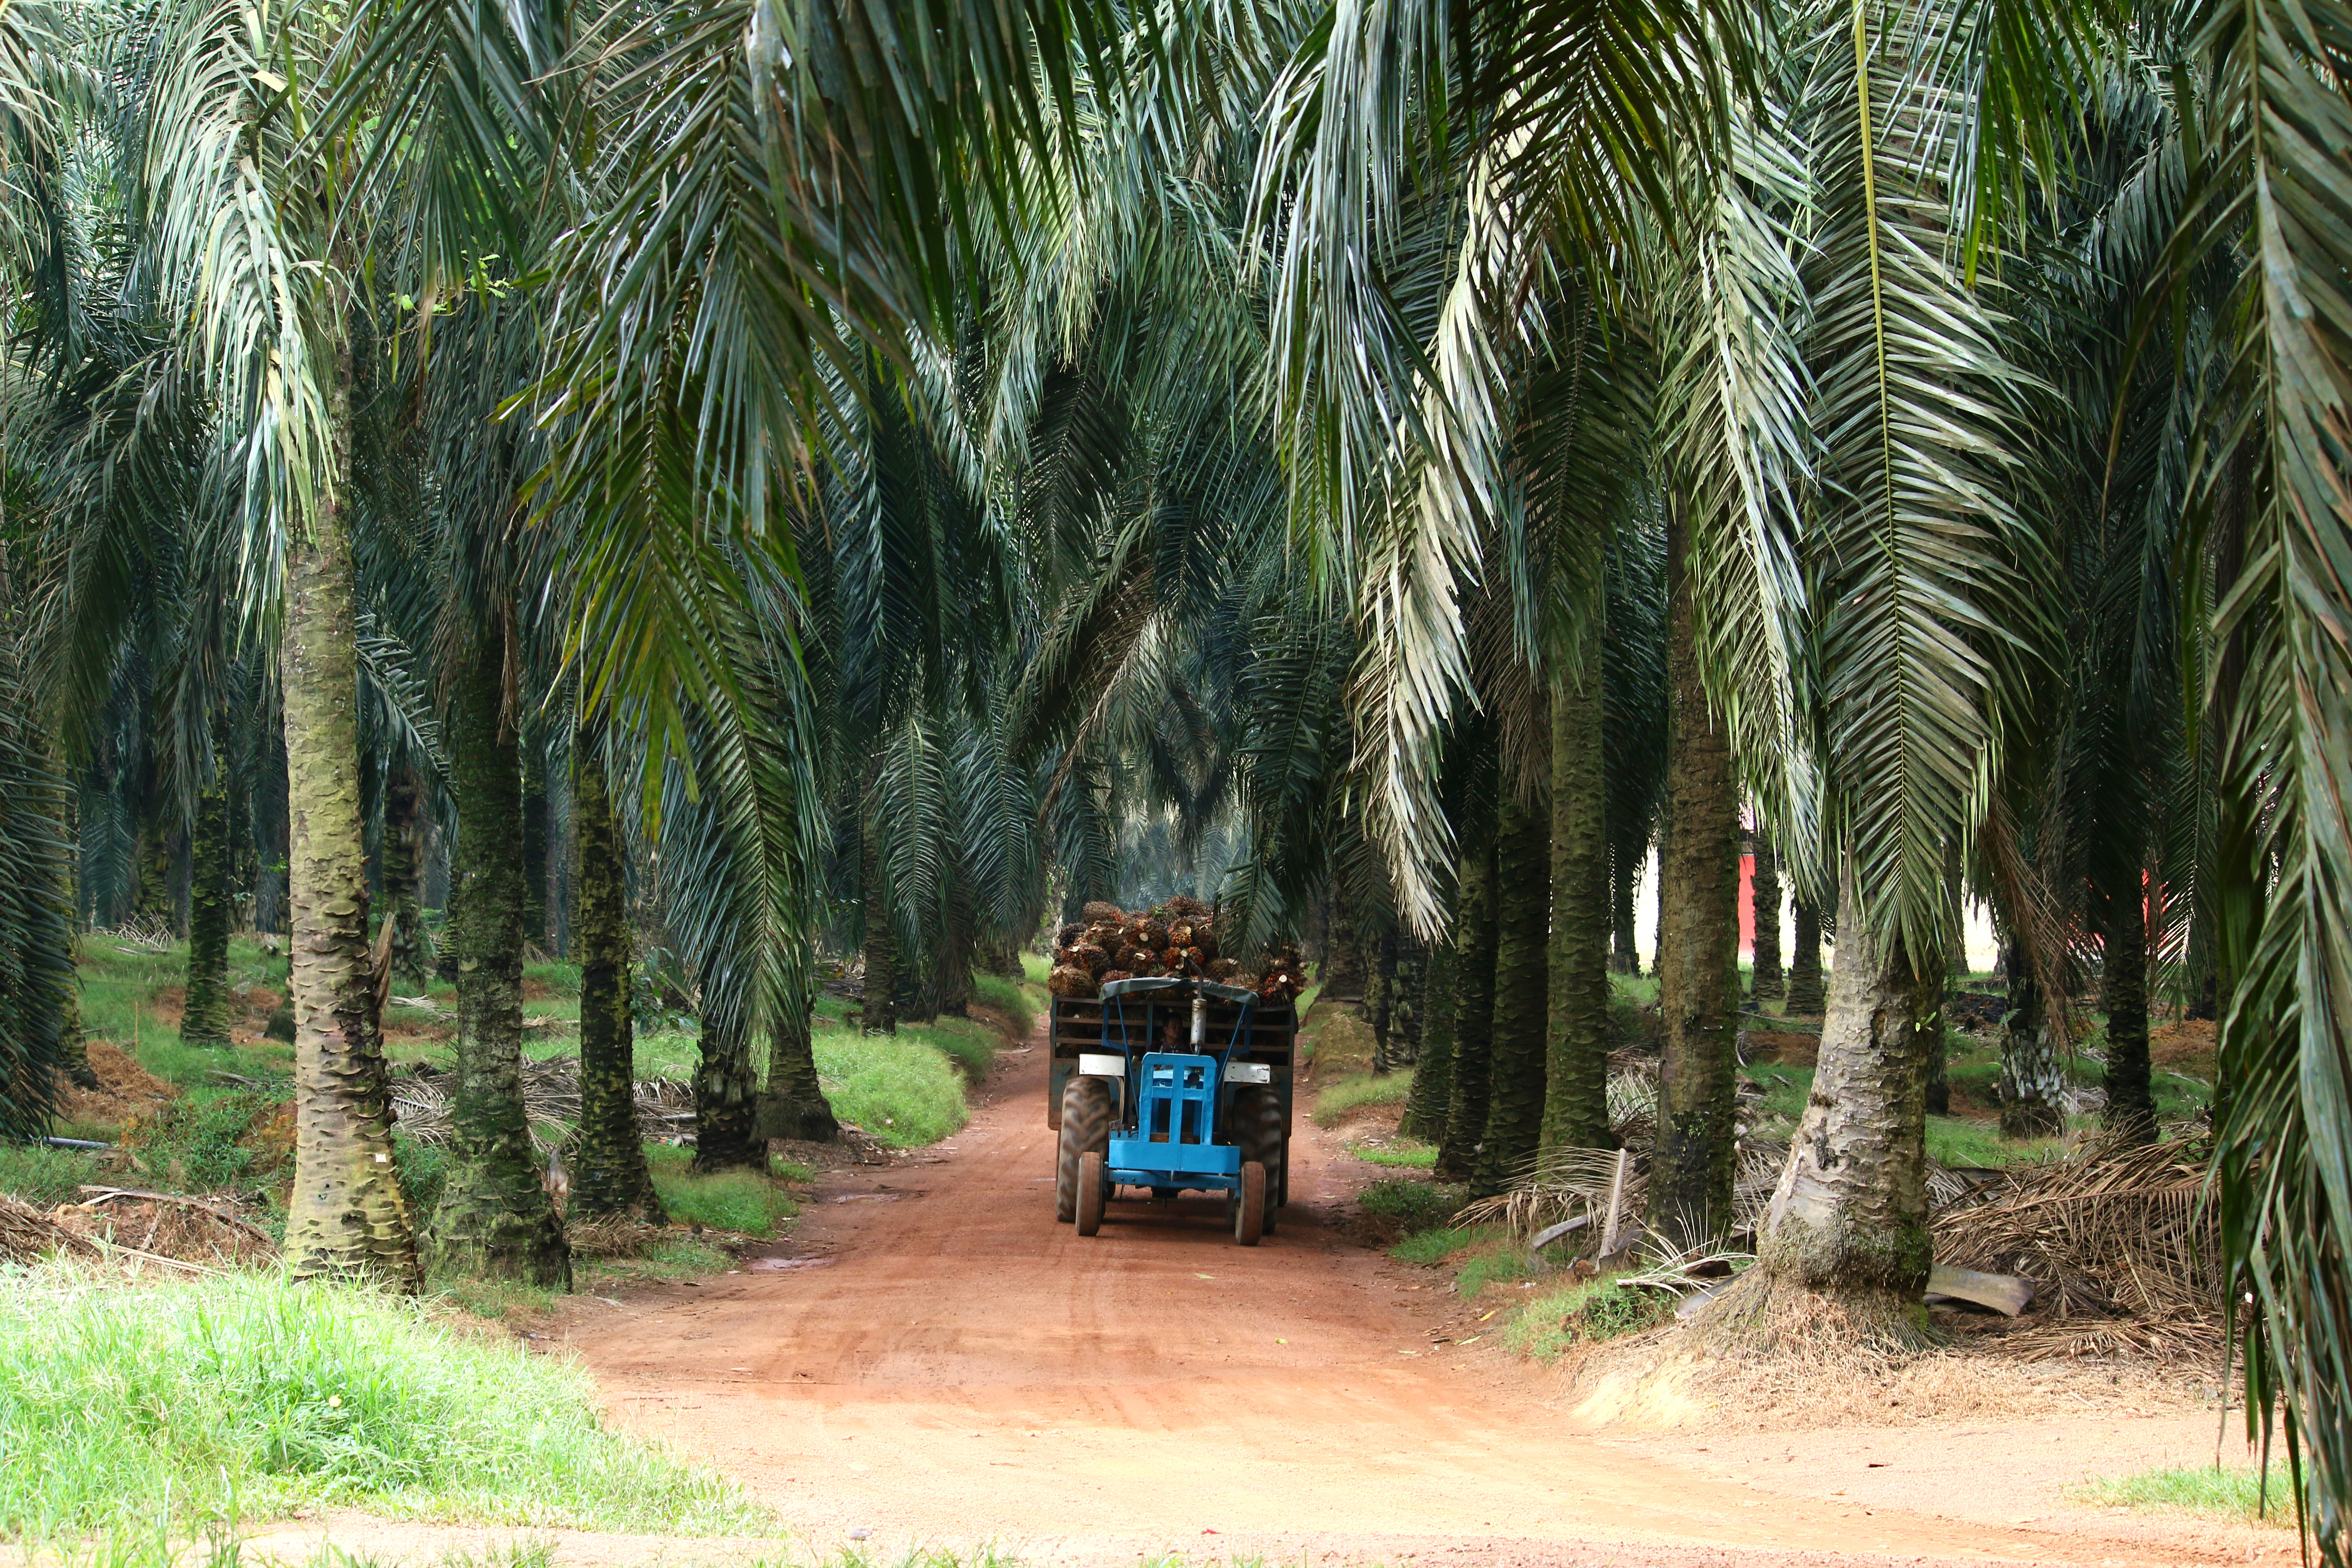 Tractor transporting oil palm fruits in oil palm plantation